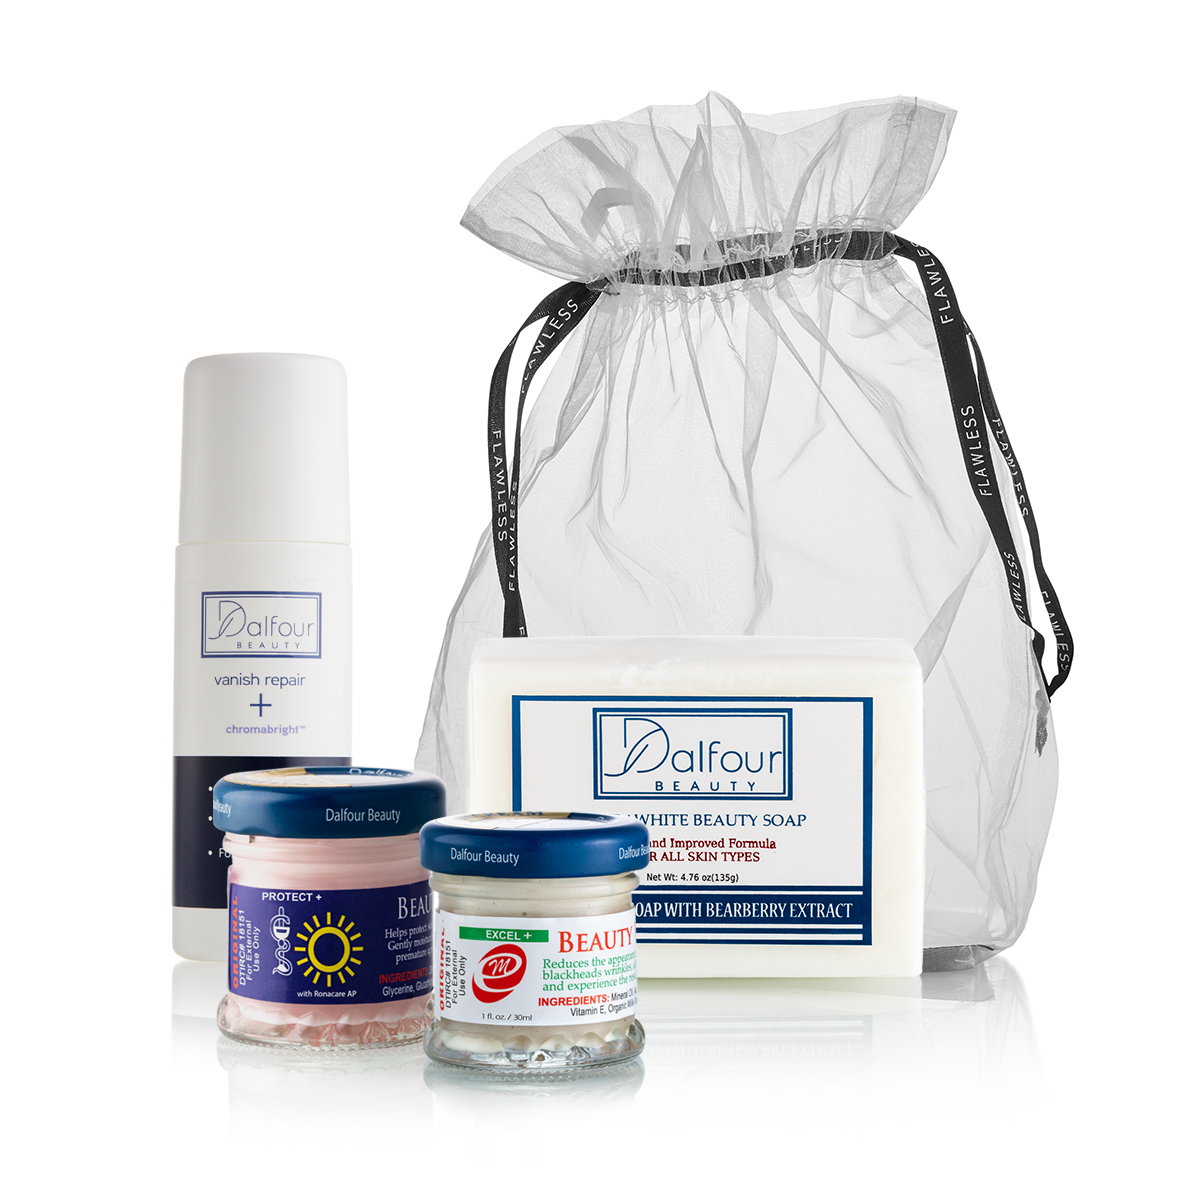 Enjoy our Best Selection of Dalfour PLUS Products with New Formulations!!! Includes a FREE Organza Bag!!